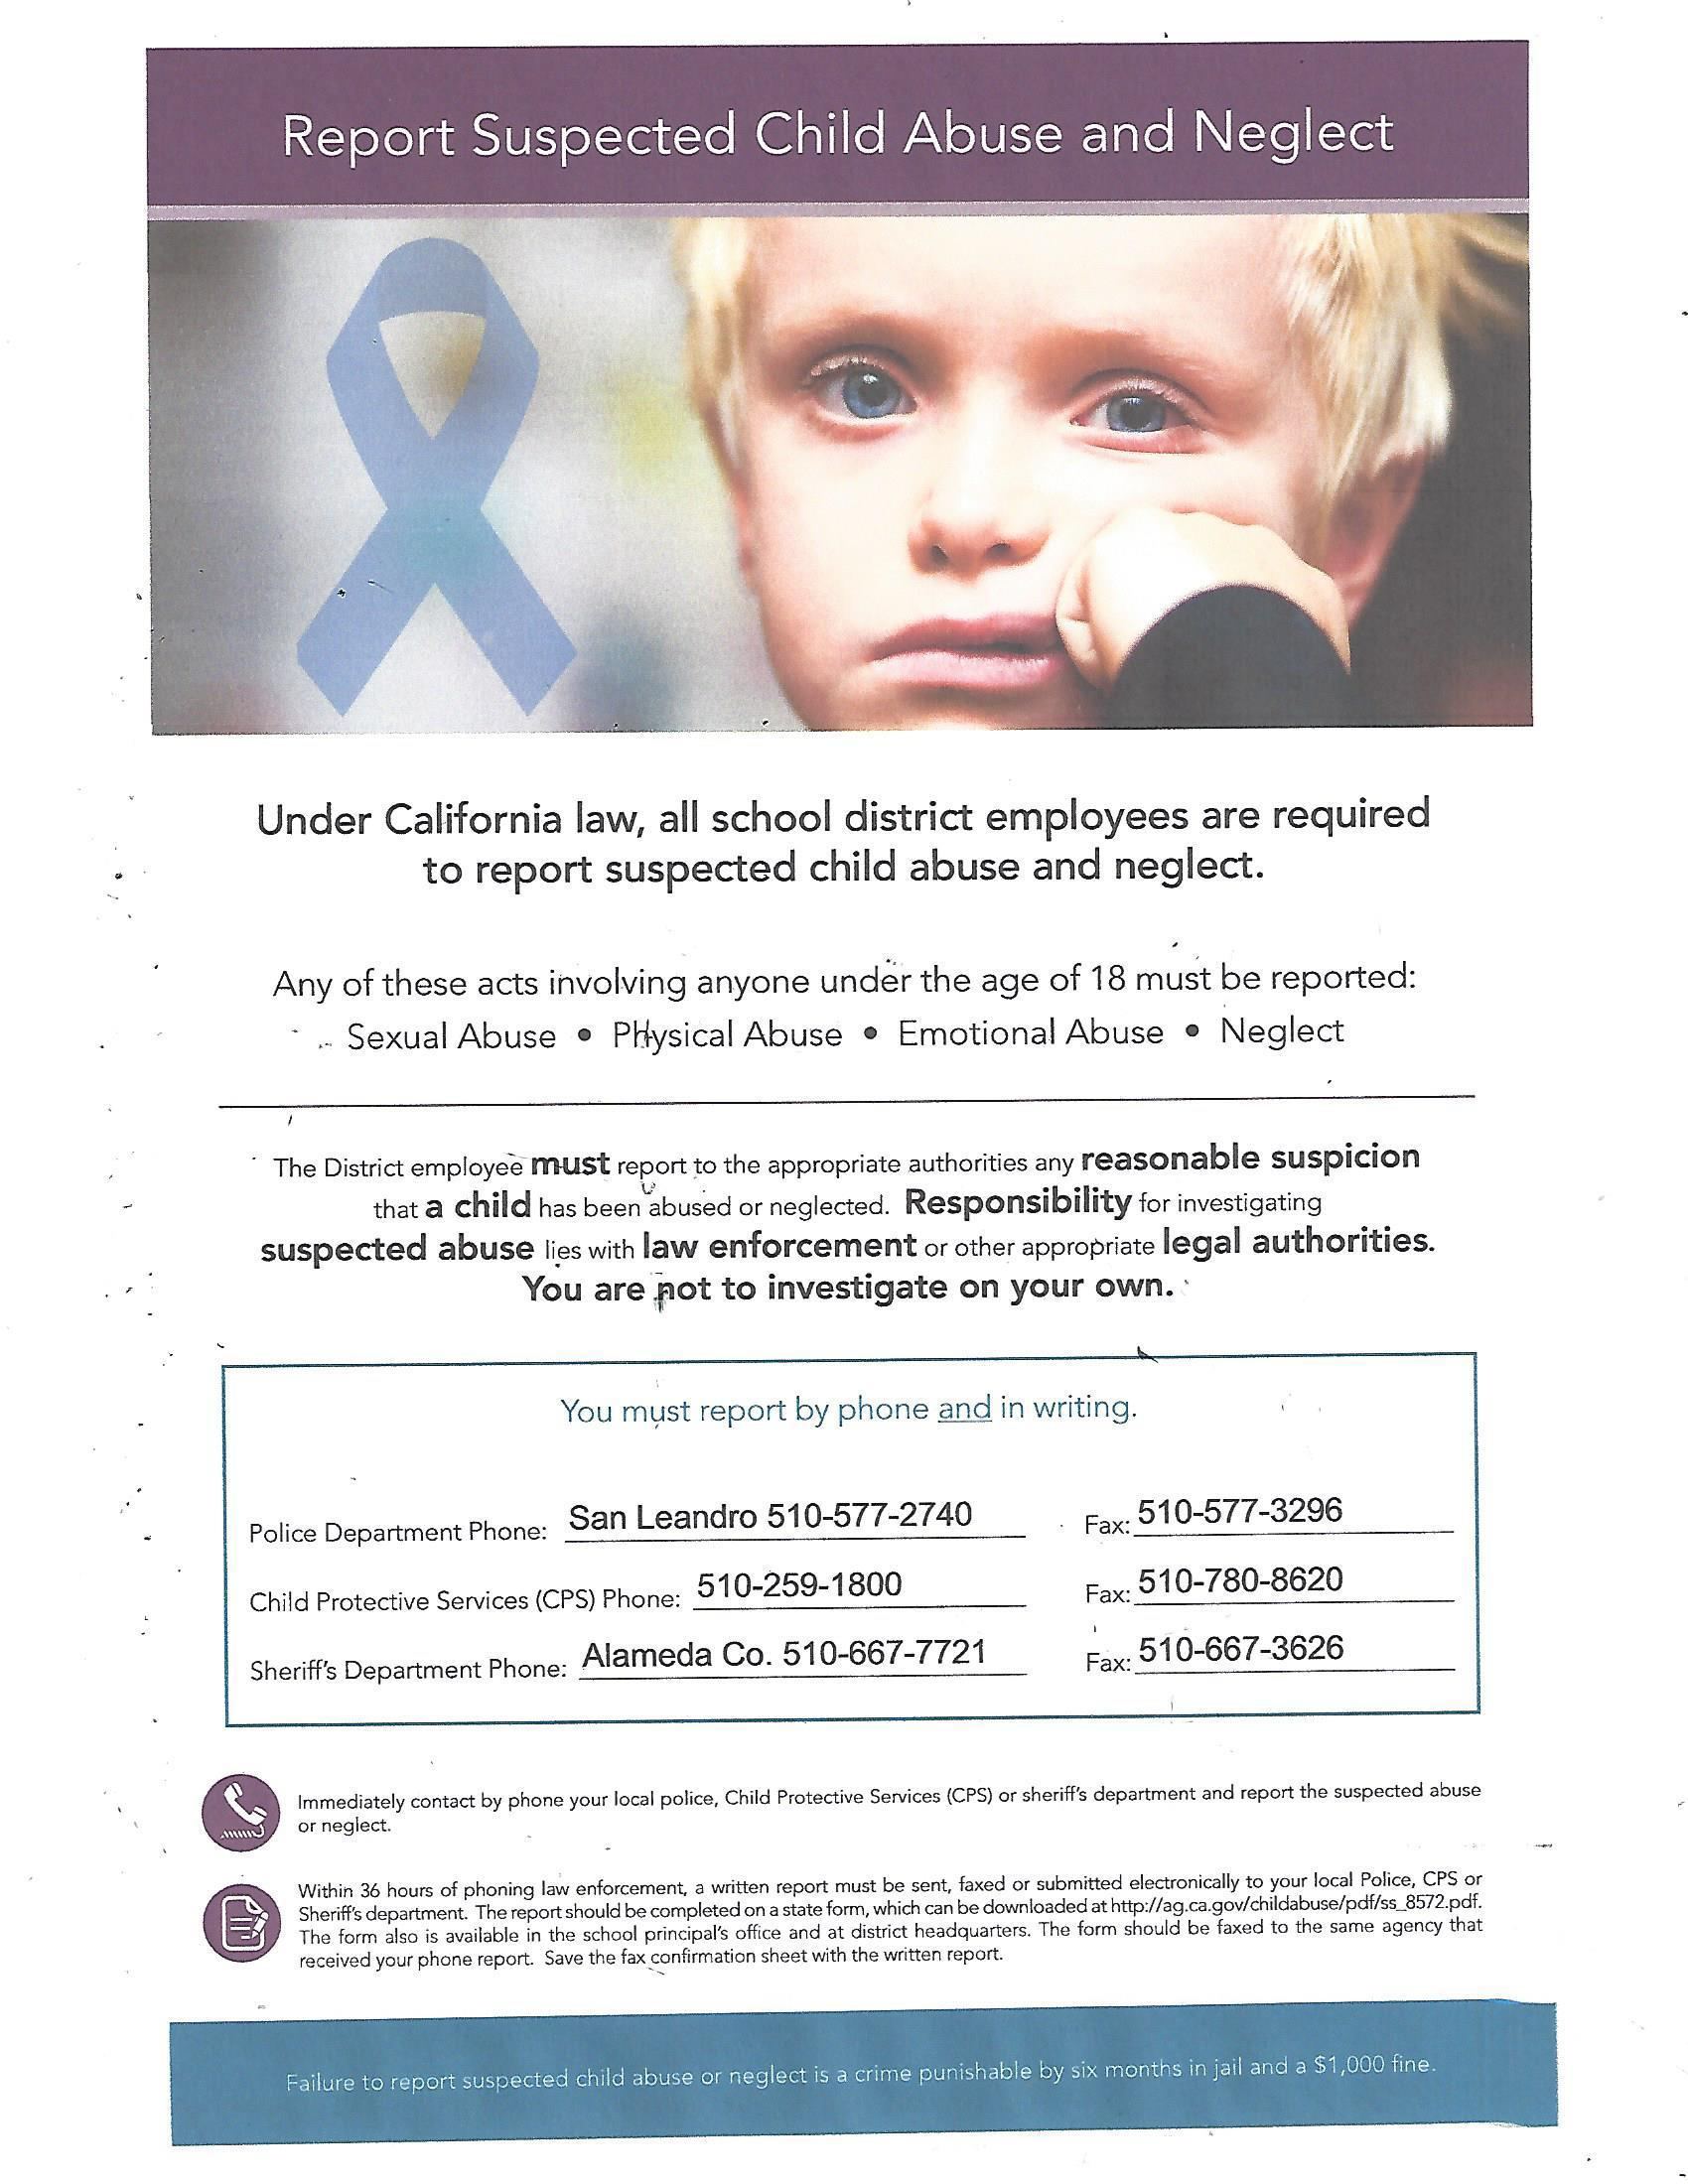 Mandated child abuse reporting instructions and phone numbers